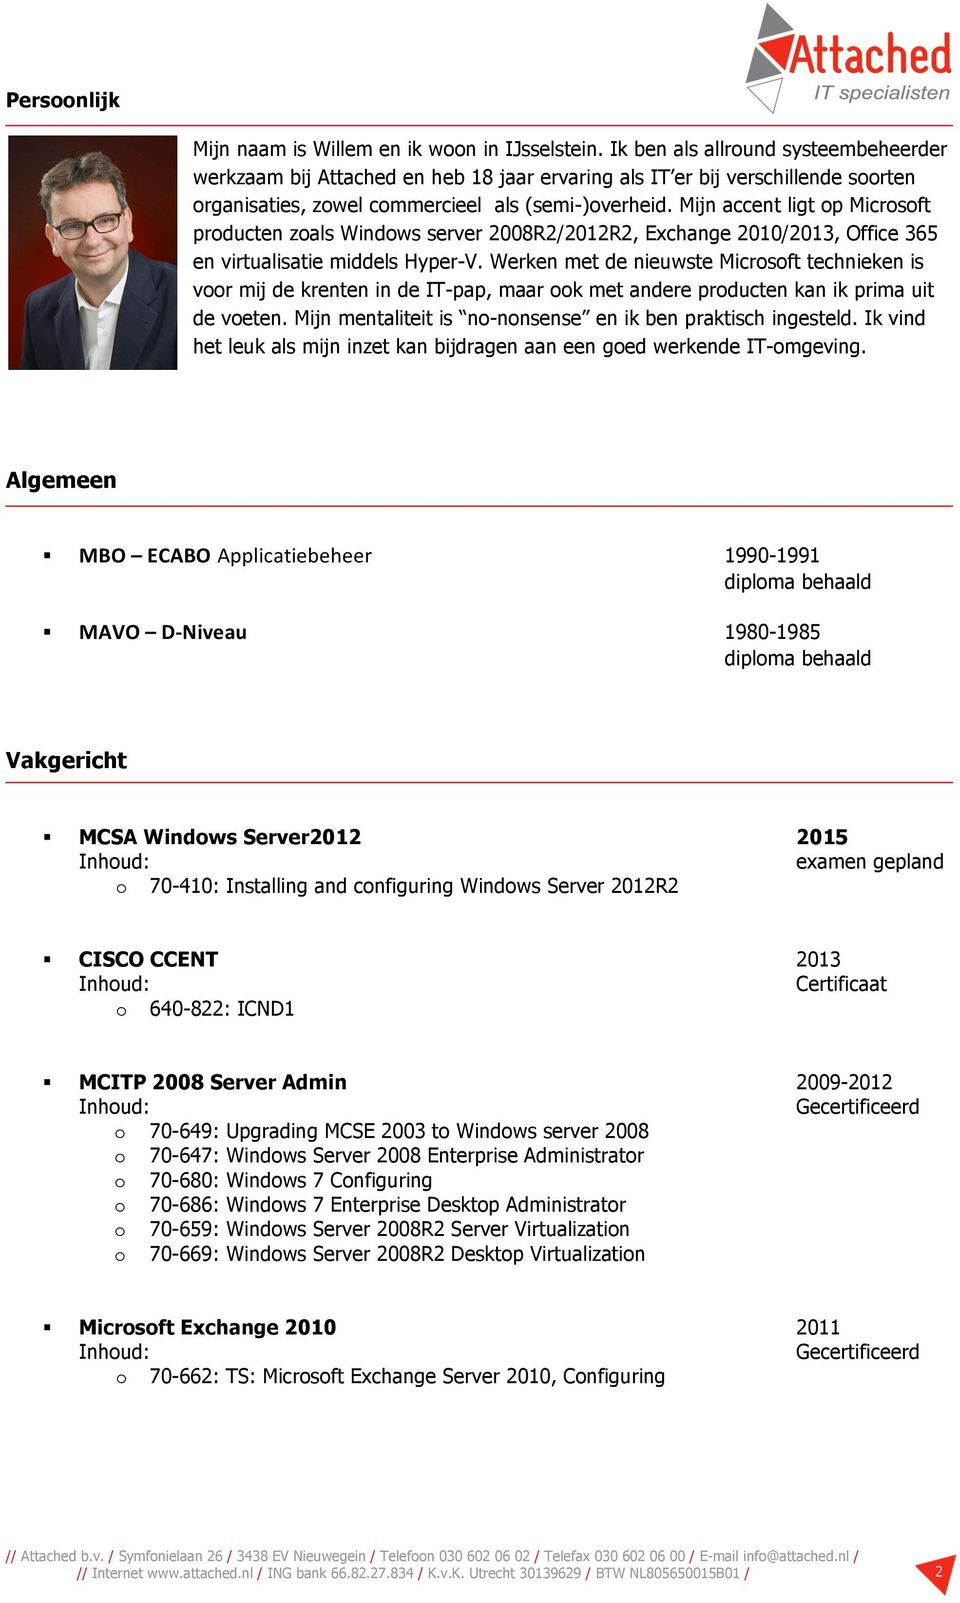 Mijn accent ligt p Micrsft prducten zals Windws server 2008R2/2012R2, Exchange 2010/2013, Office 365 en virtualisatie middels Hyper-V.